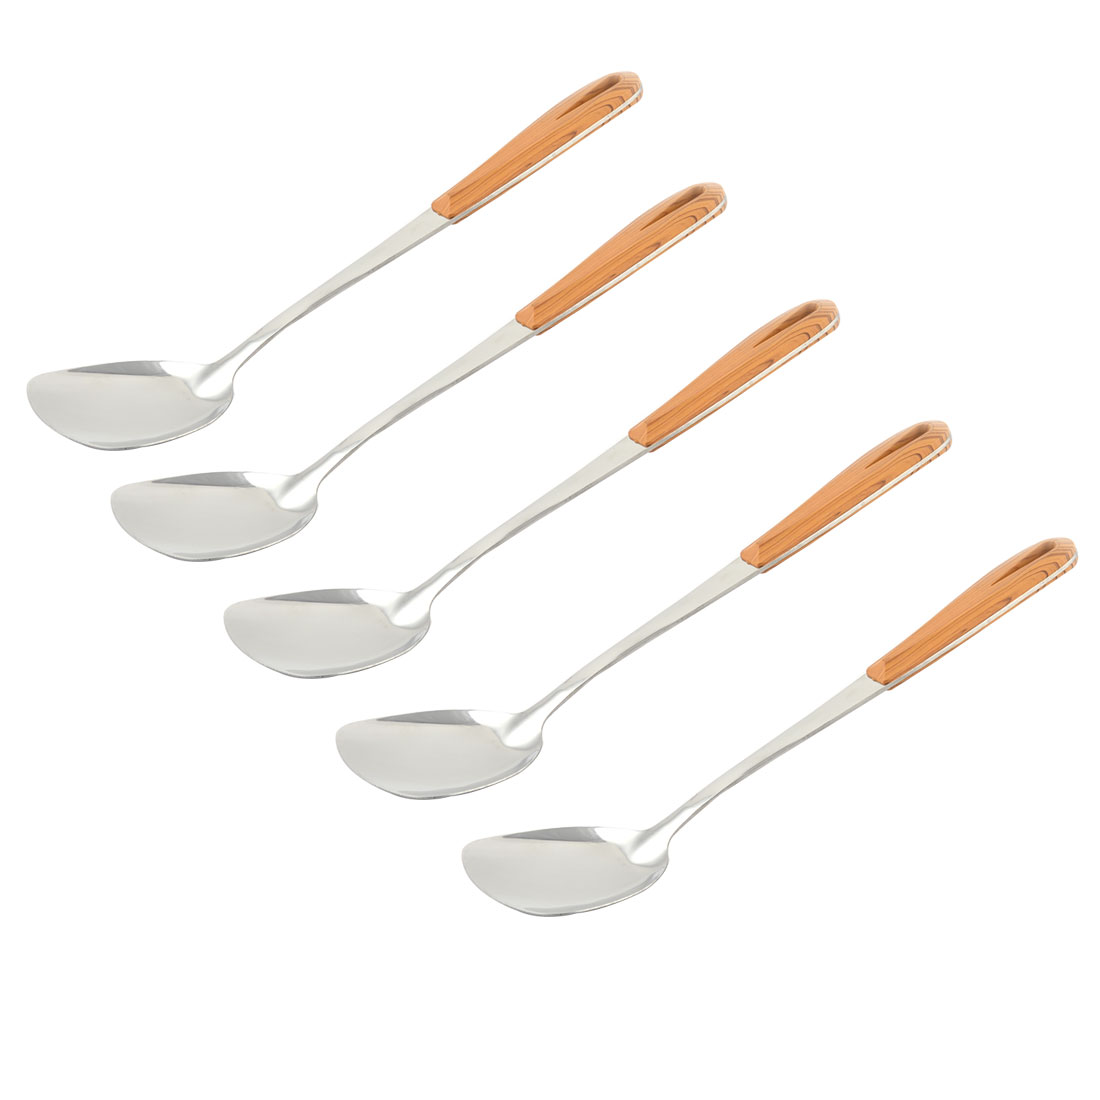 Kitchen Cooking Tool Solid Stir Fry Pancake Turner Spatula 37cm Length 5 PCS